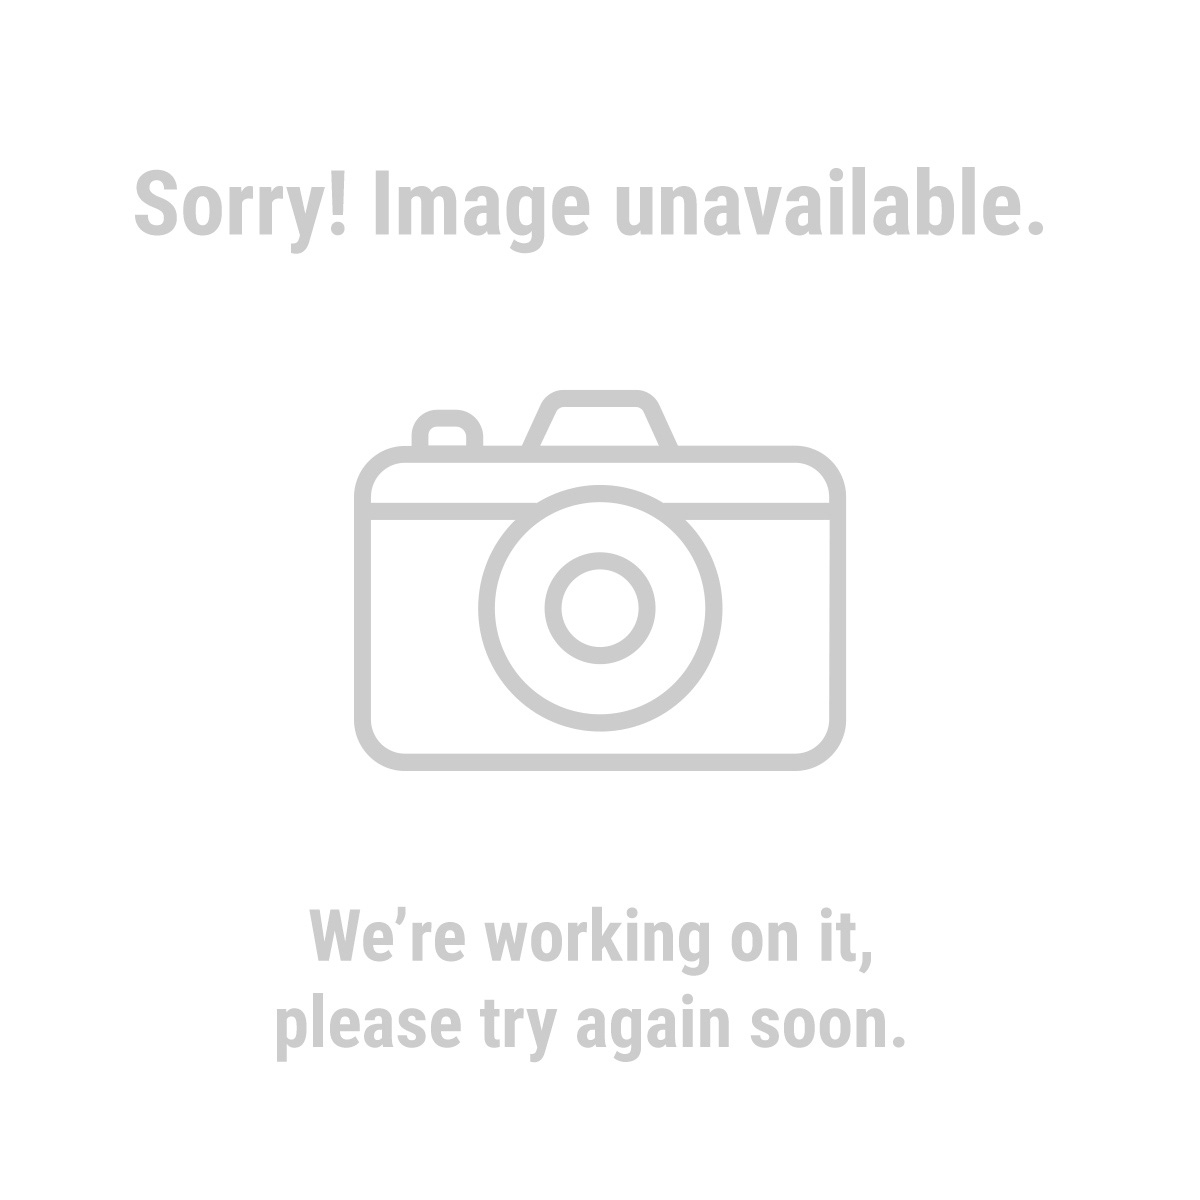 A Frame Hoist Plans http://www.marineengine.com/boat-forum/showthread.php?388276-Gantry-hoist-or-crane-for-engine-installation